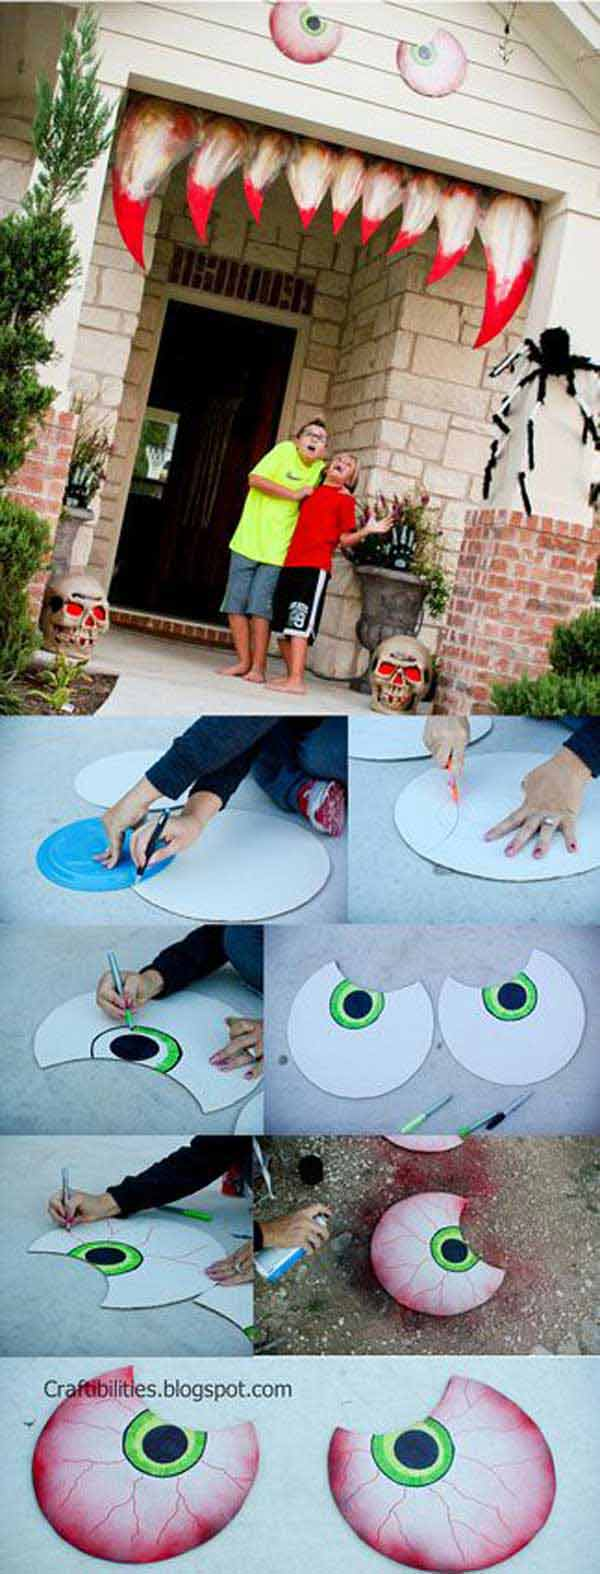 Halloween-porch-ideas-14